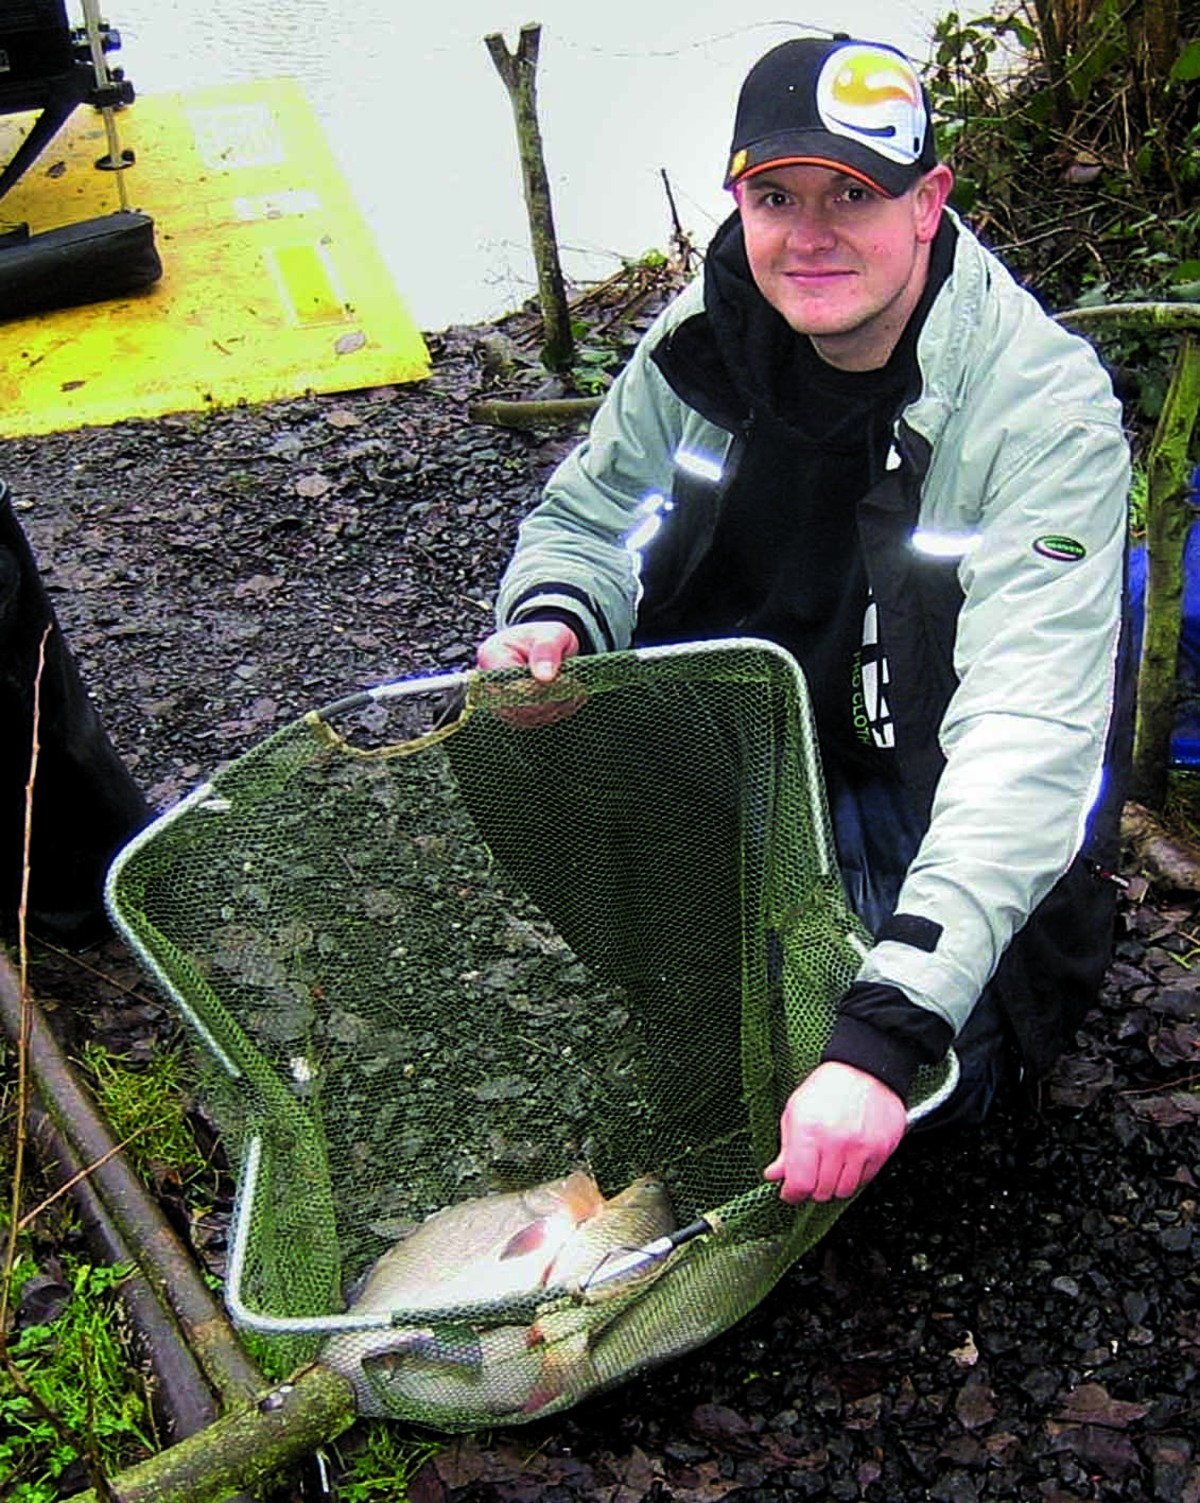 TOP CATCH: For Malvern's Dave Wilkes in a tough fishing contest at Fishponds, Colwall. Picture: DENNIS FLANAGAN